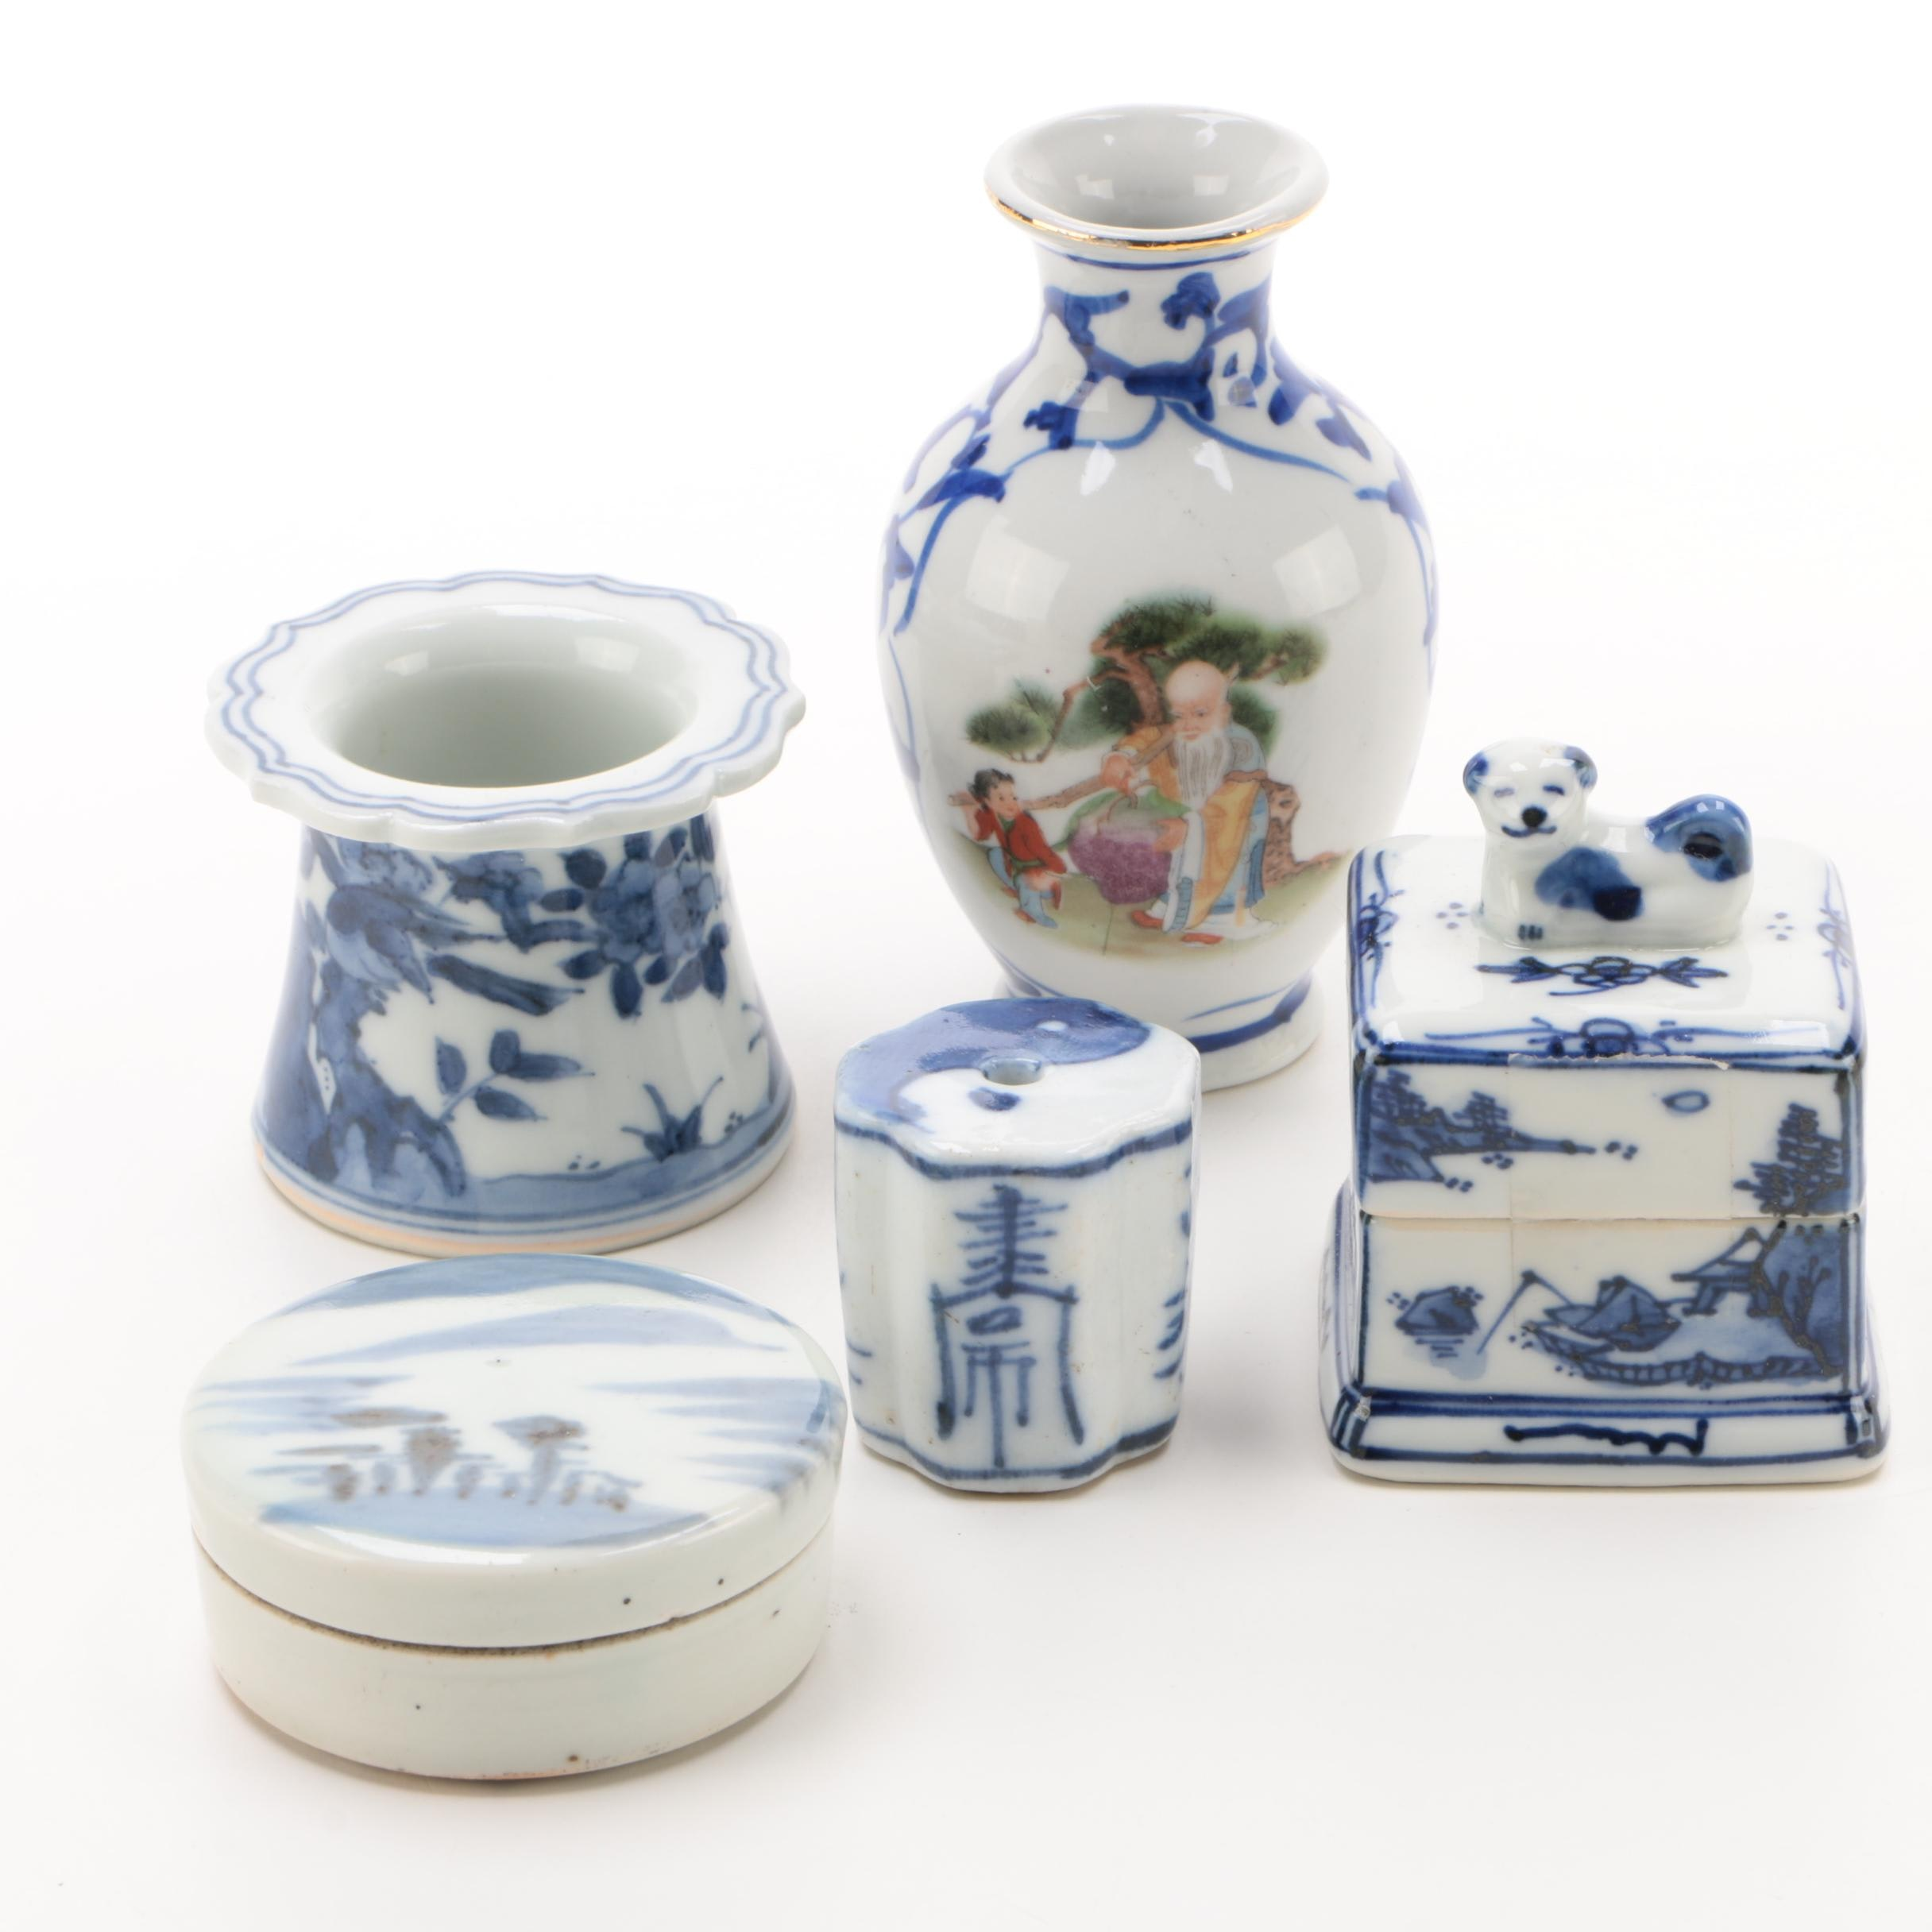 Chinese Blue Porcelain Miniature Vase, Box, and More